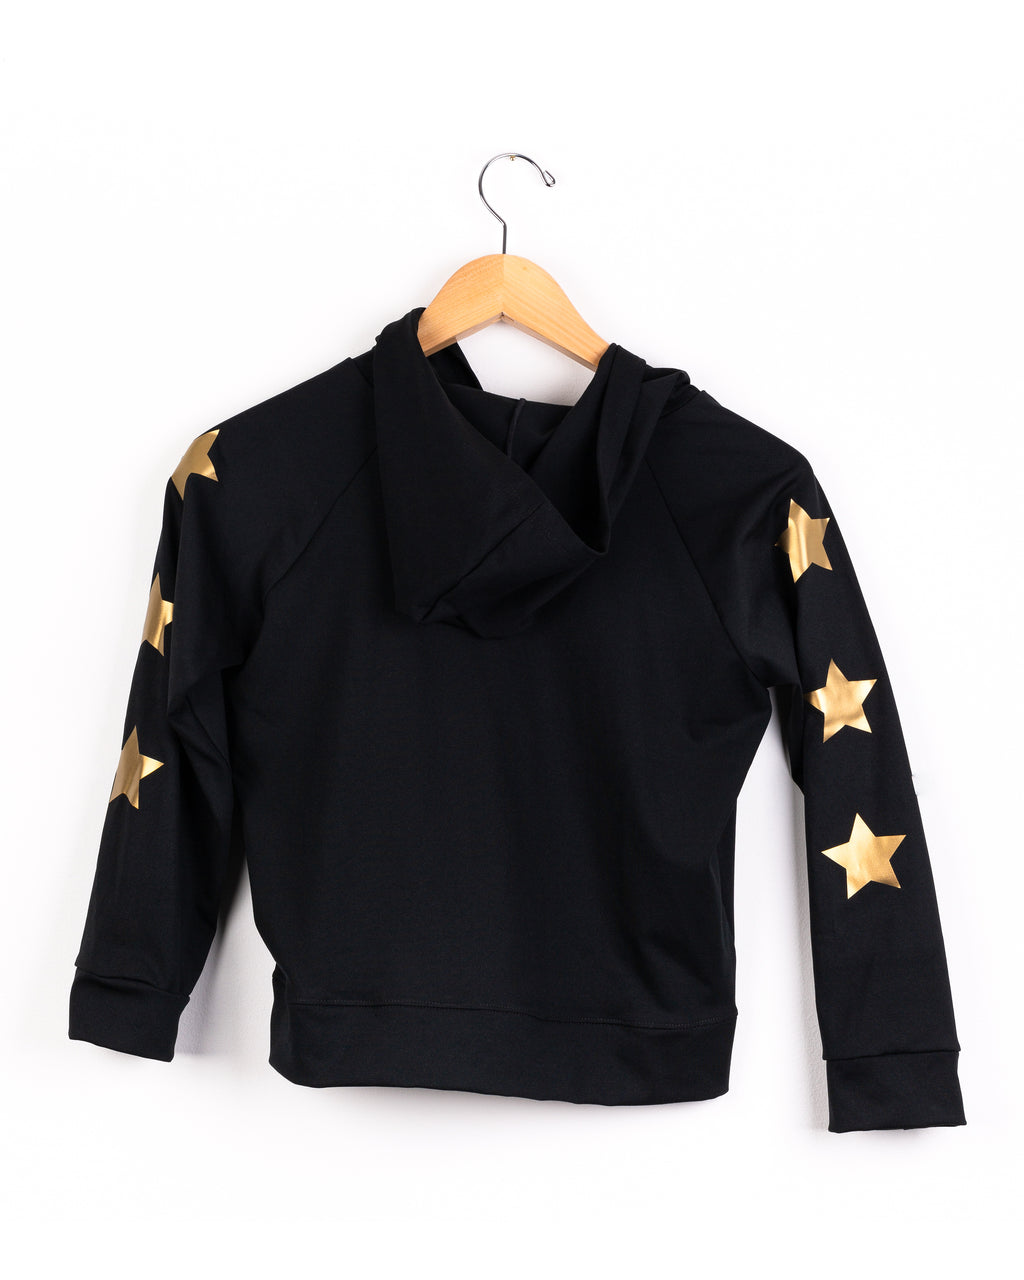 Stars Gold Black Jacket - Fanilu